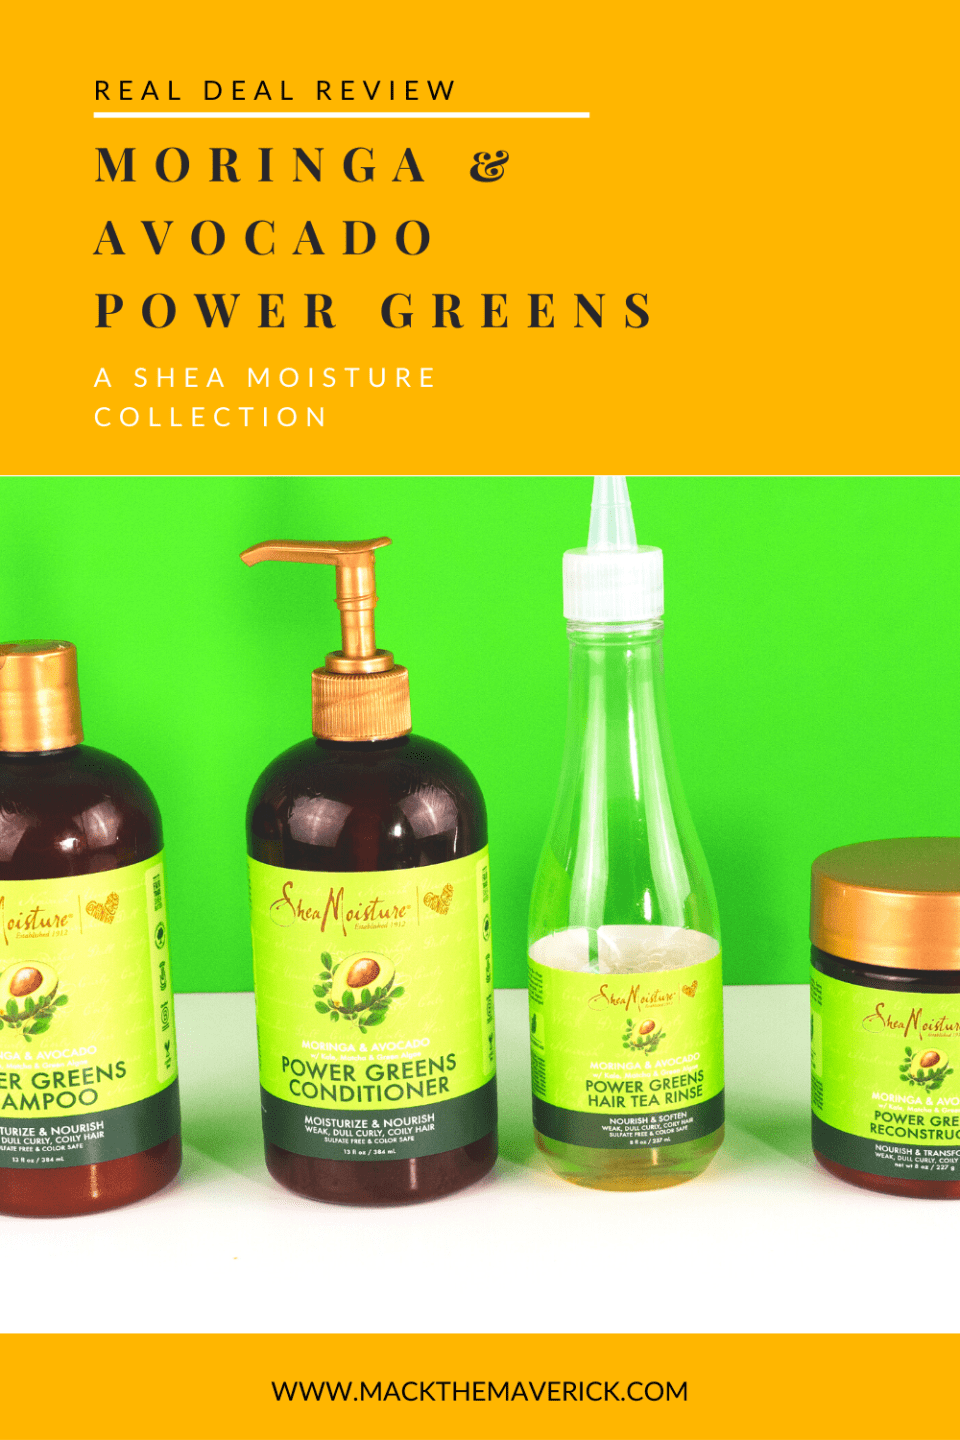 Shea Moisture Moringa & Avocado Power Greens Collection